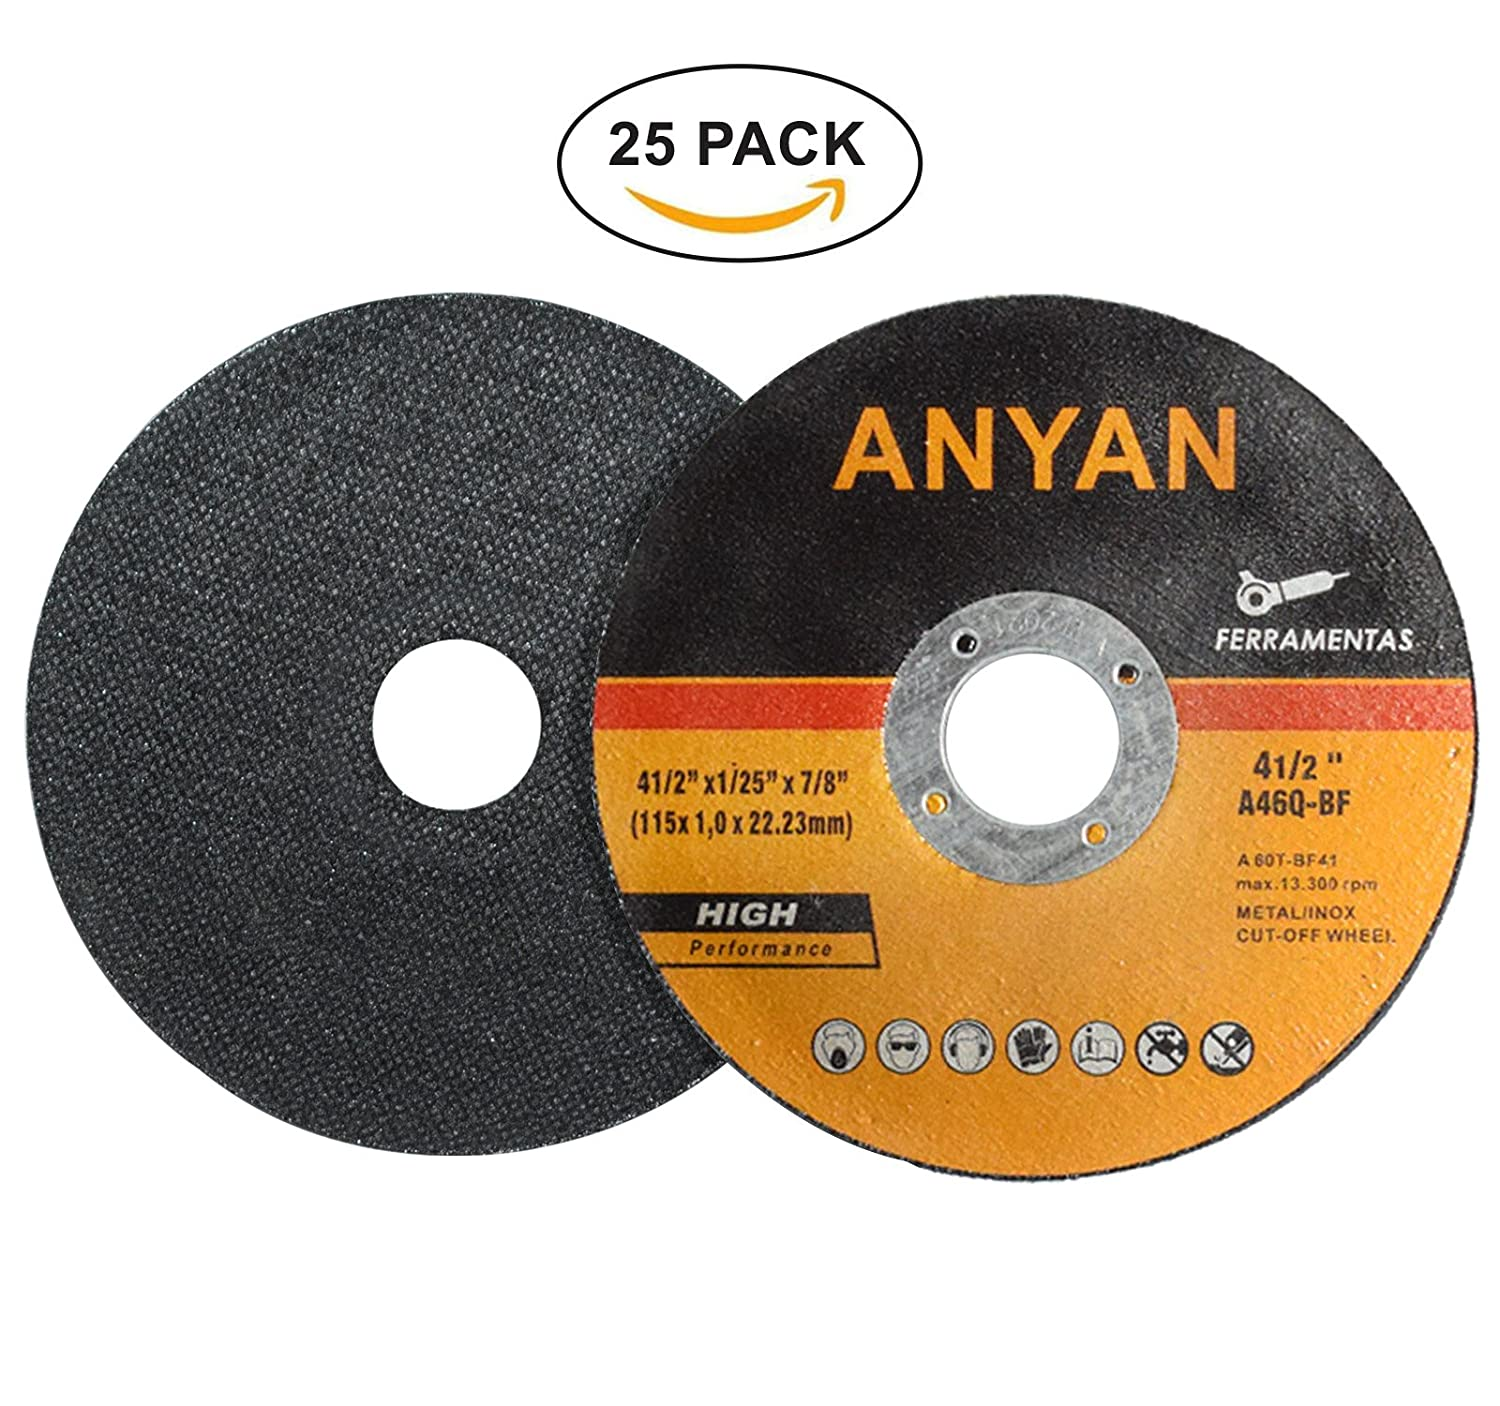 Amazon.com: Anyan - Disco de corte ultrafino para metal y ...